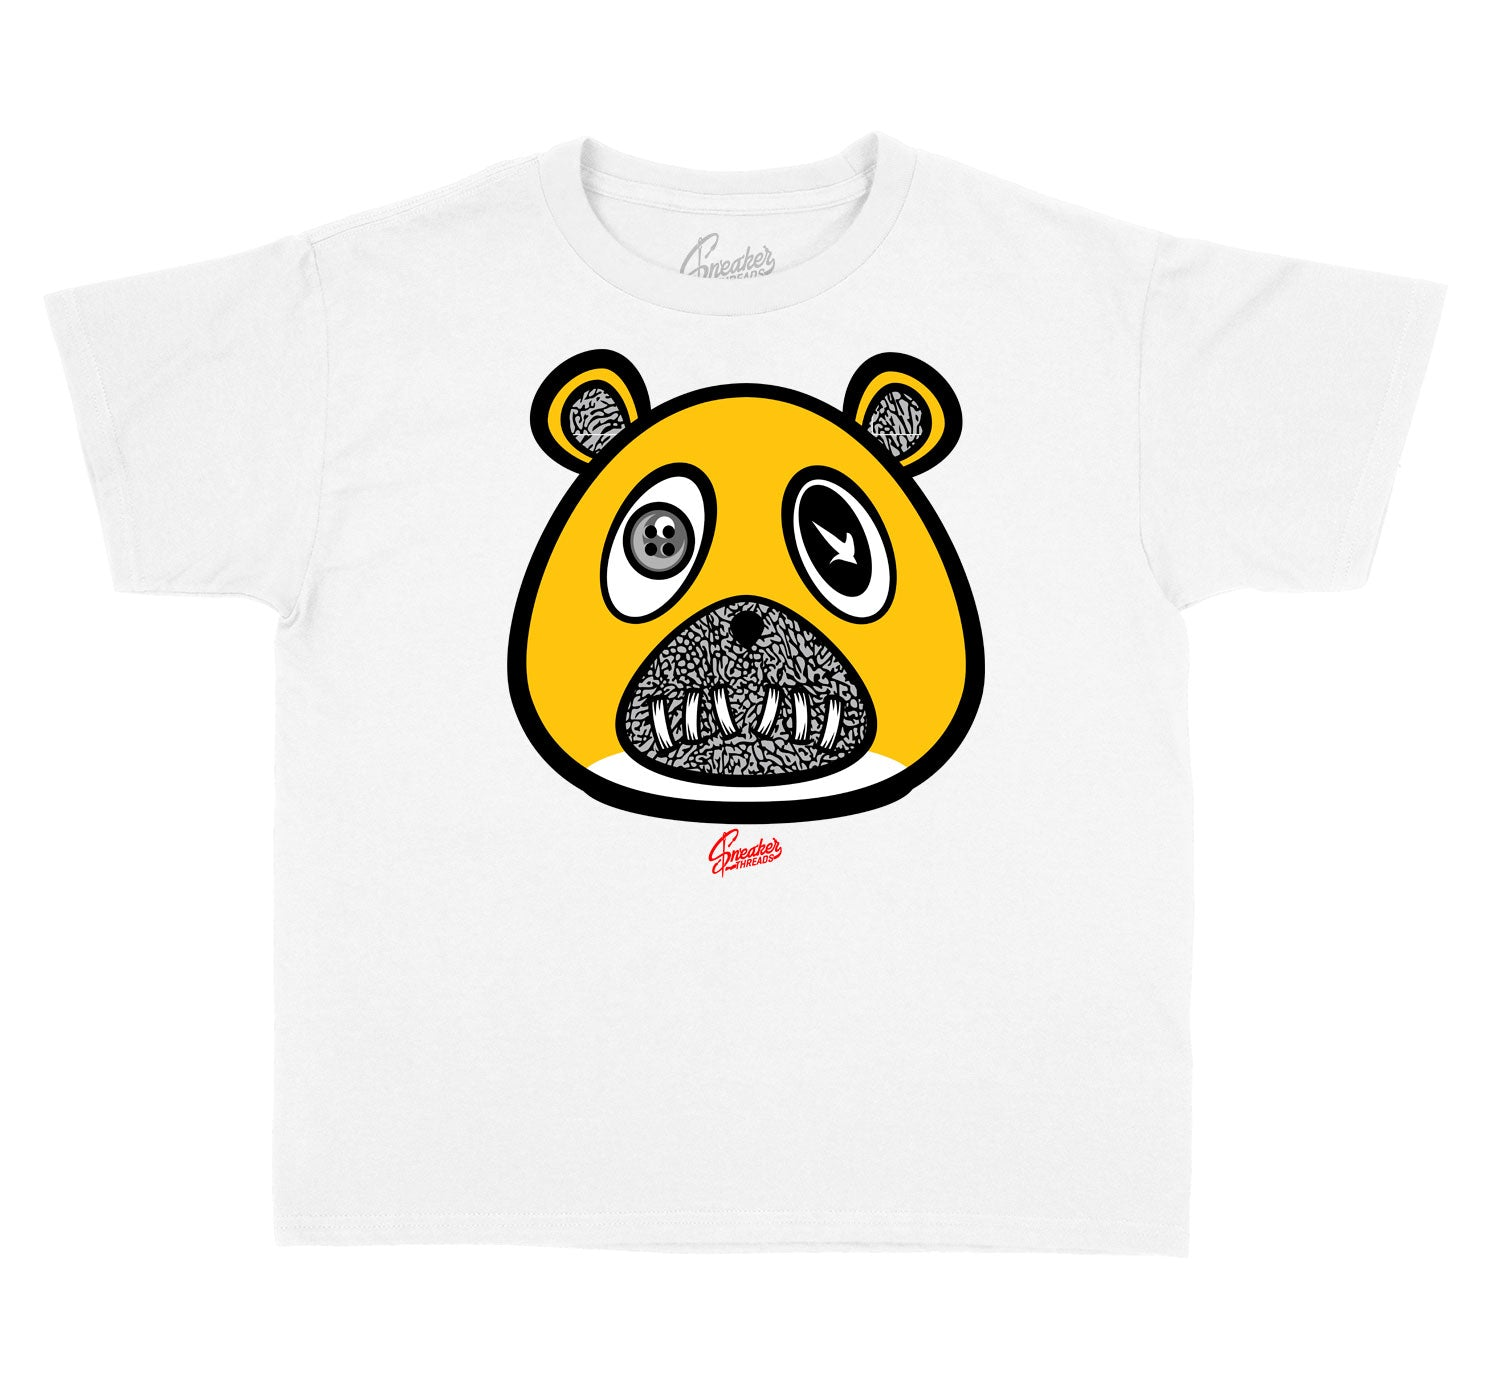 Kids Cool Grey 3 Shirt - ST Bear - White